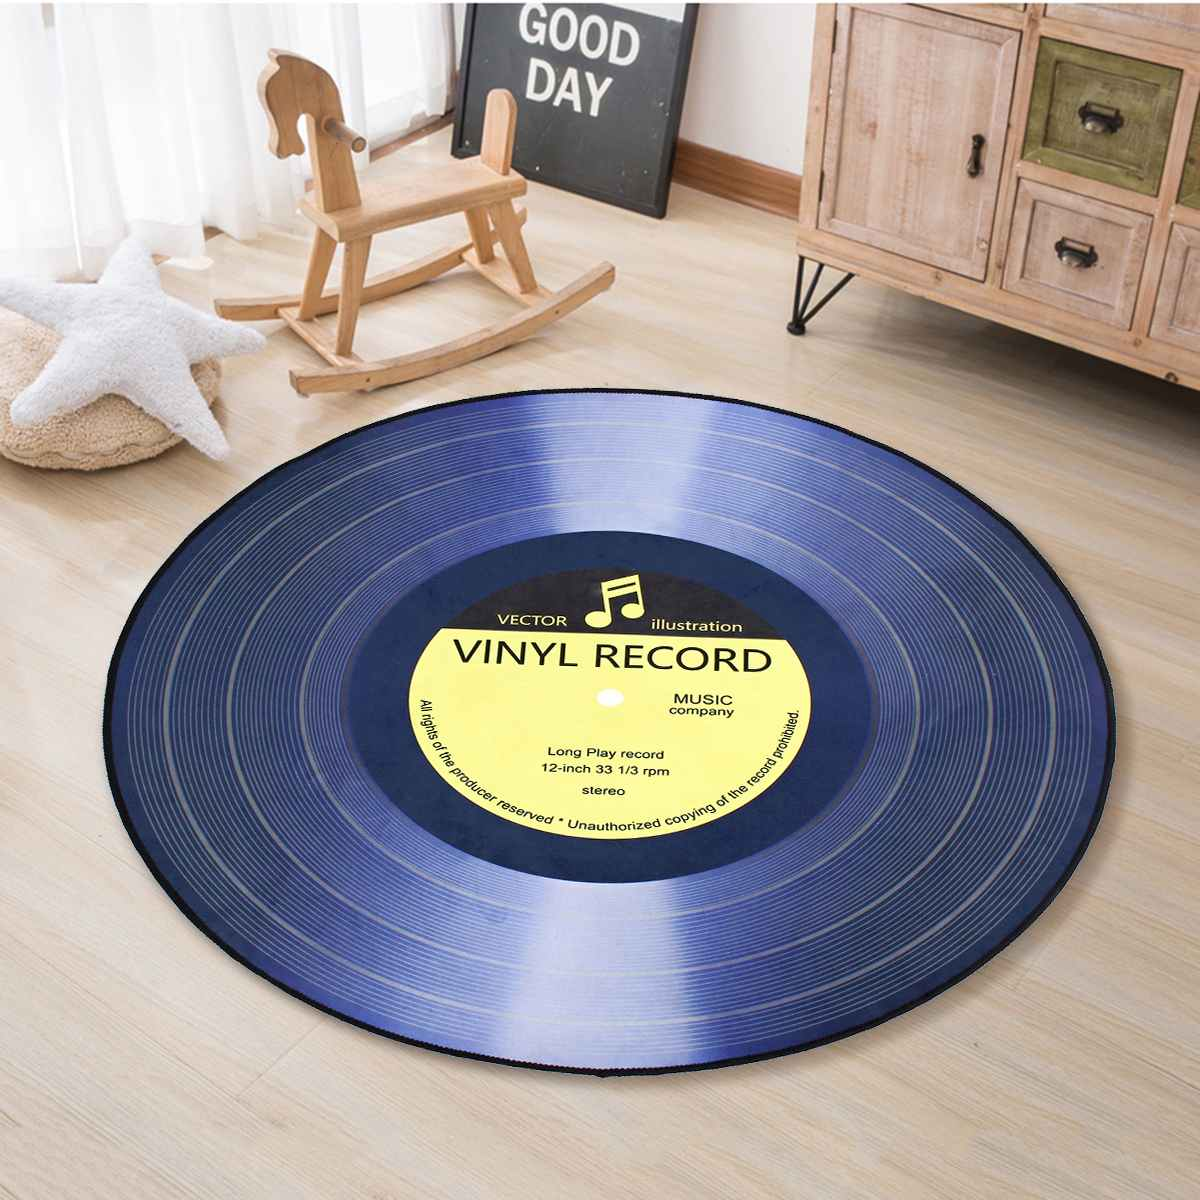 4 Sizes Round Carpet Rugs Floor Mat 3D Vinyl Record Printed Carpets Bedroom Kids Room Chair Home Decor Living Room Anti Slip